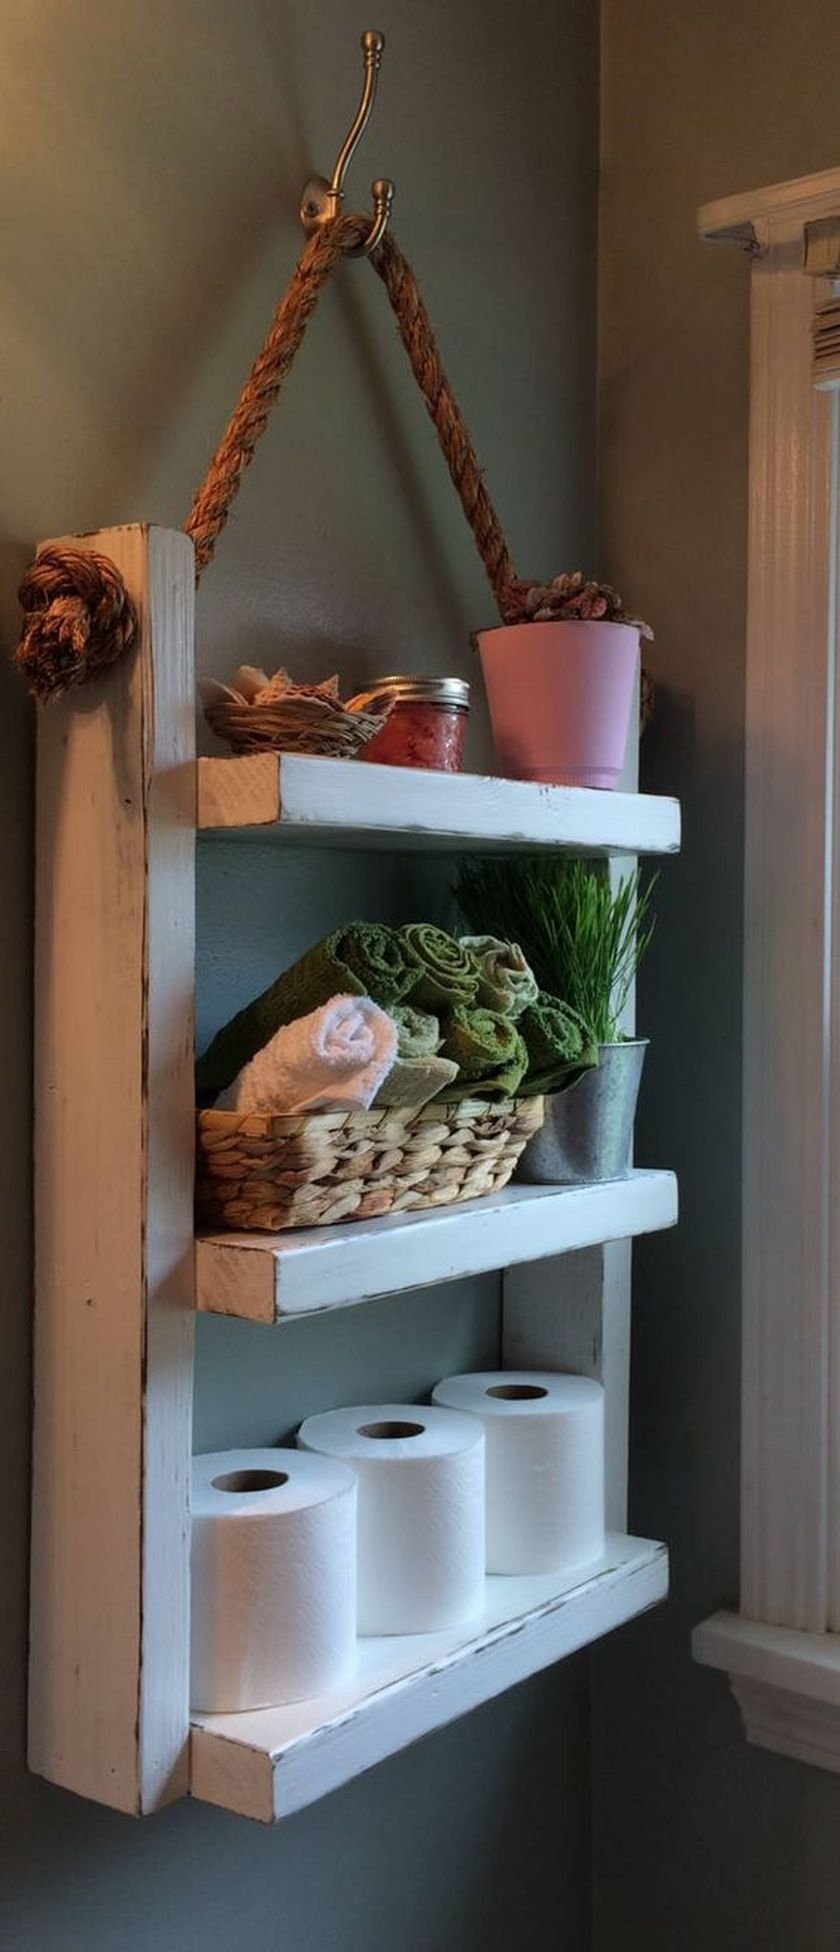 30 rustic country bathroom shelves ideas that you must try